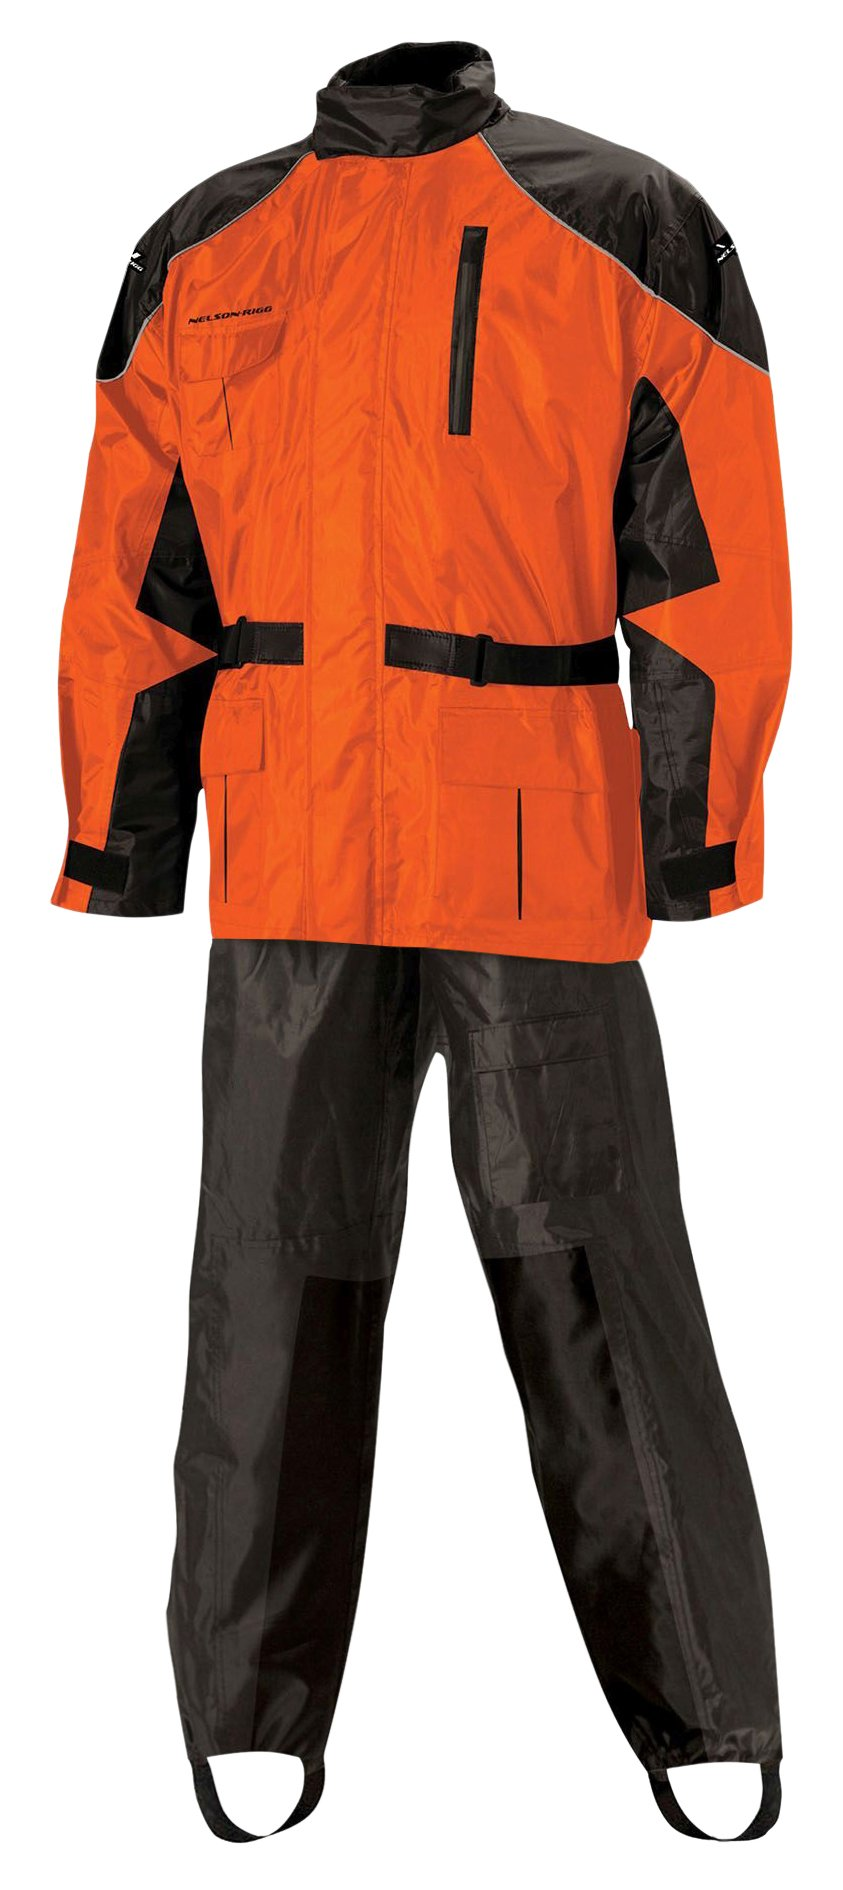 Nelson Rigg AS-3000 Unisex Adult AS-3000-ORG-05-XXL Aston Motorcycle Rain Suit 2-Piece, (Orange, XX-Large), X by Nelson-Rigg